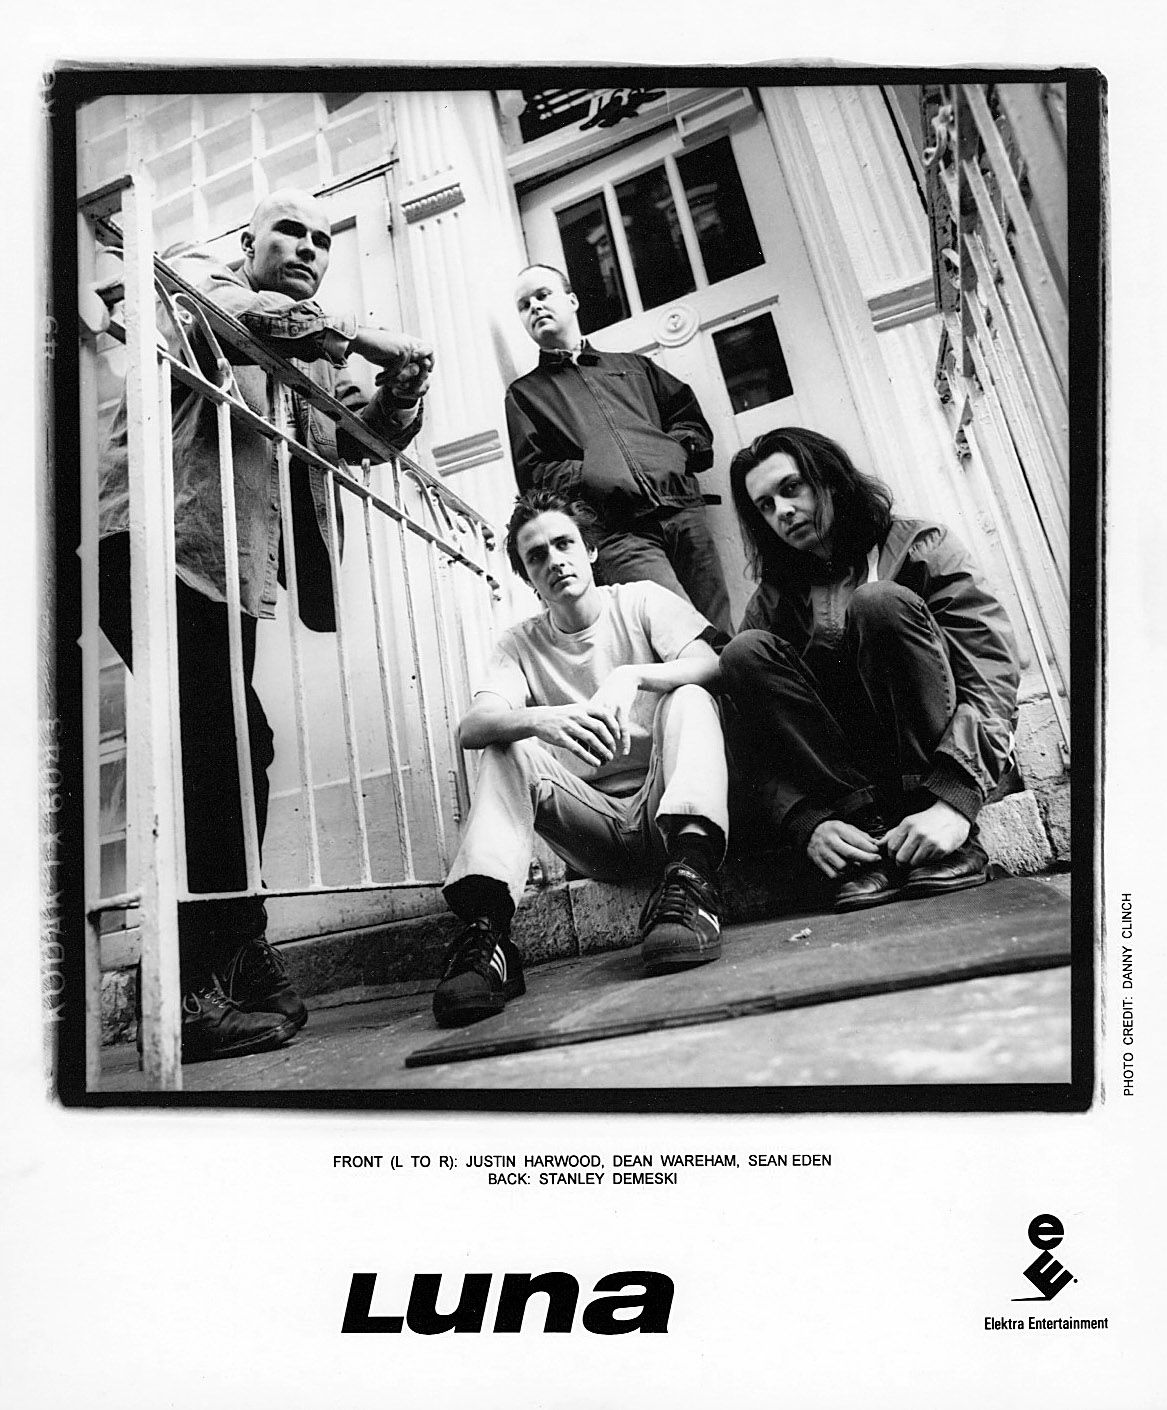 Luna promo photo from 1994